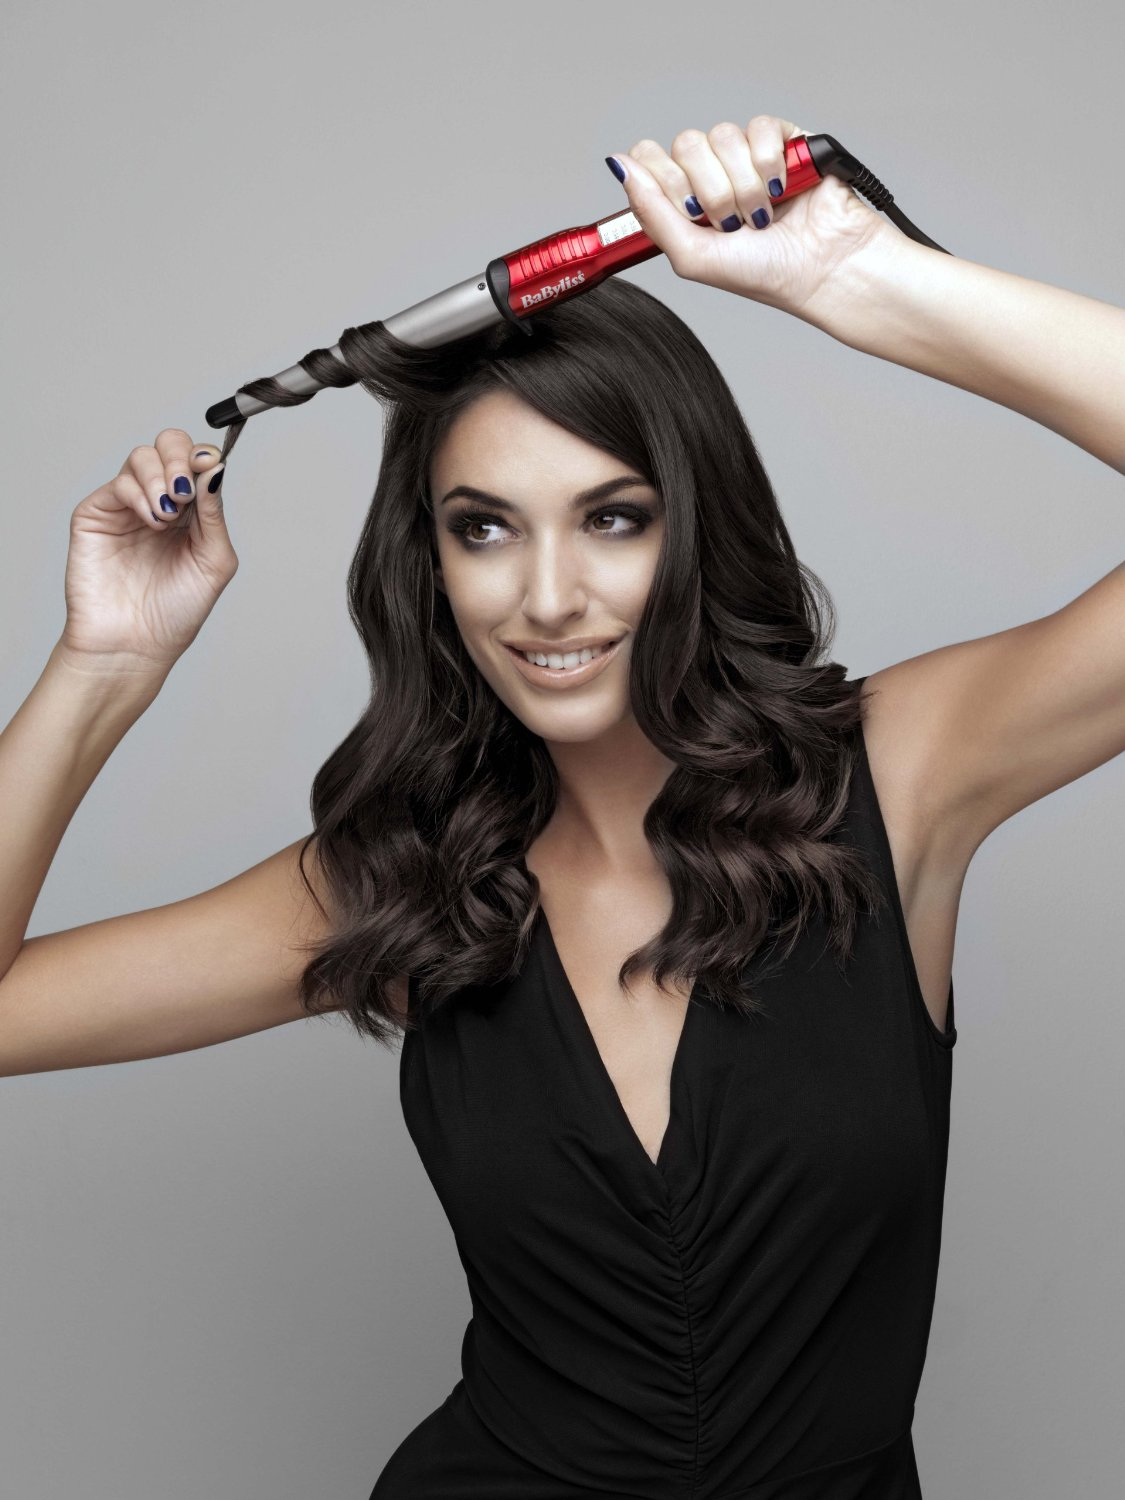 UPDATED BaByliss 2285U Curling Wand Review 2016